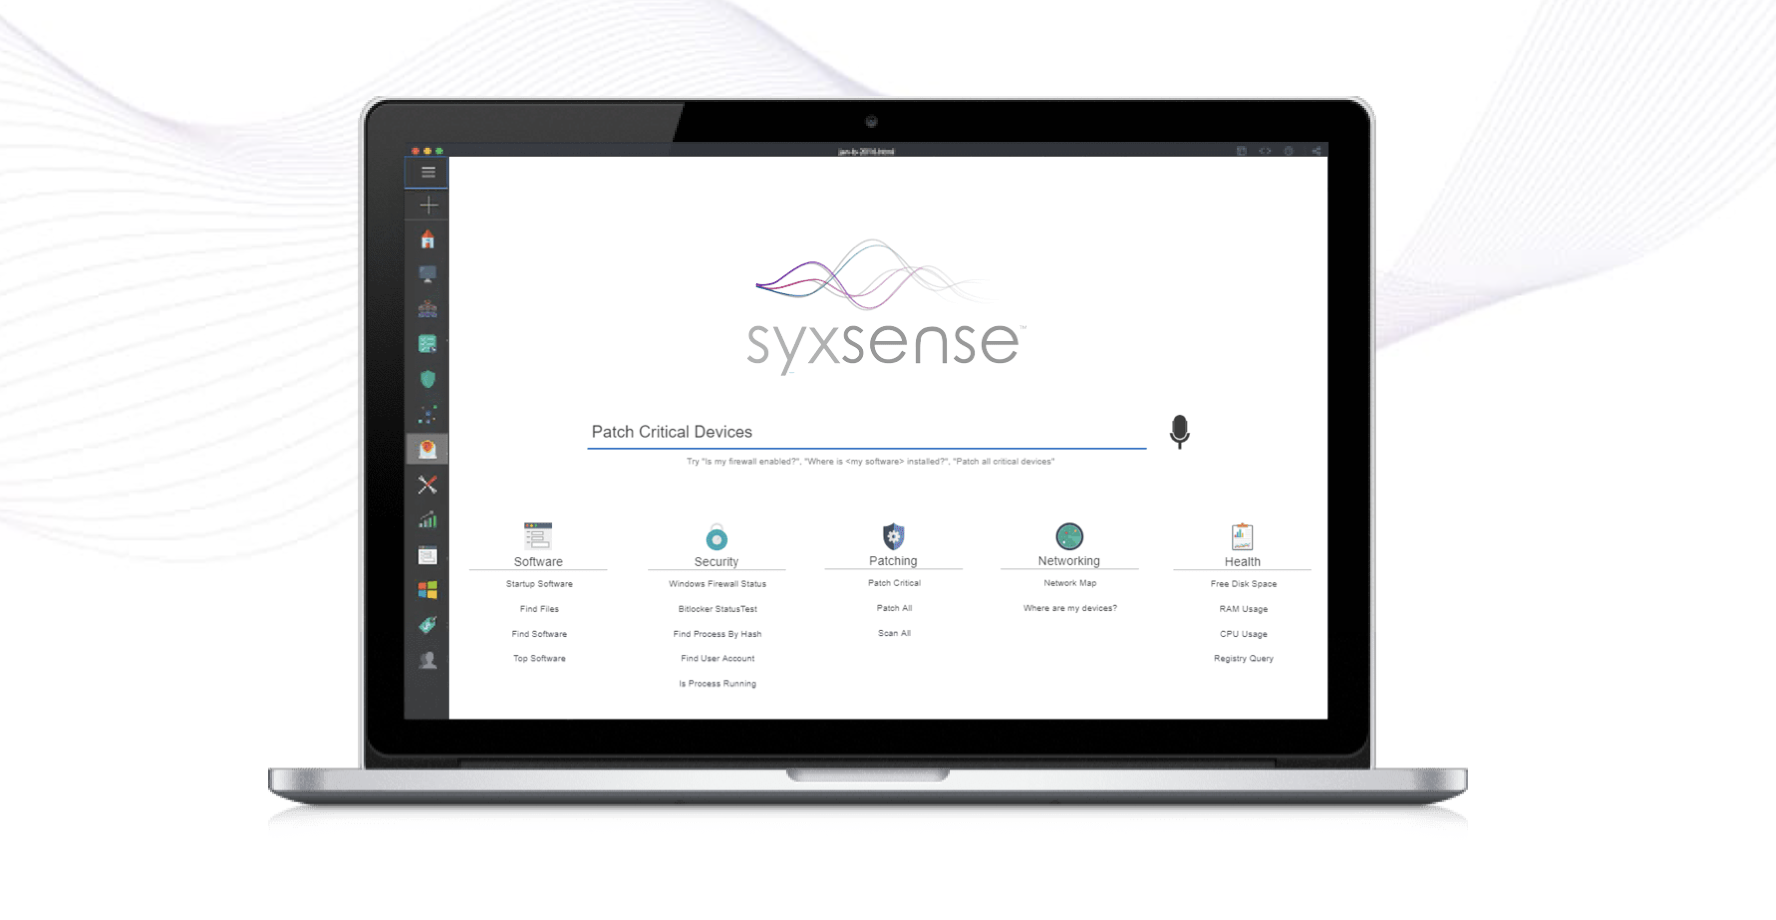 Announcing Syxsense Secure and Syxsense Manage